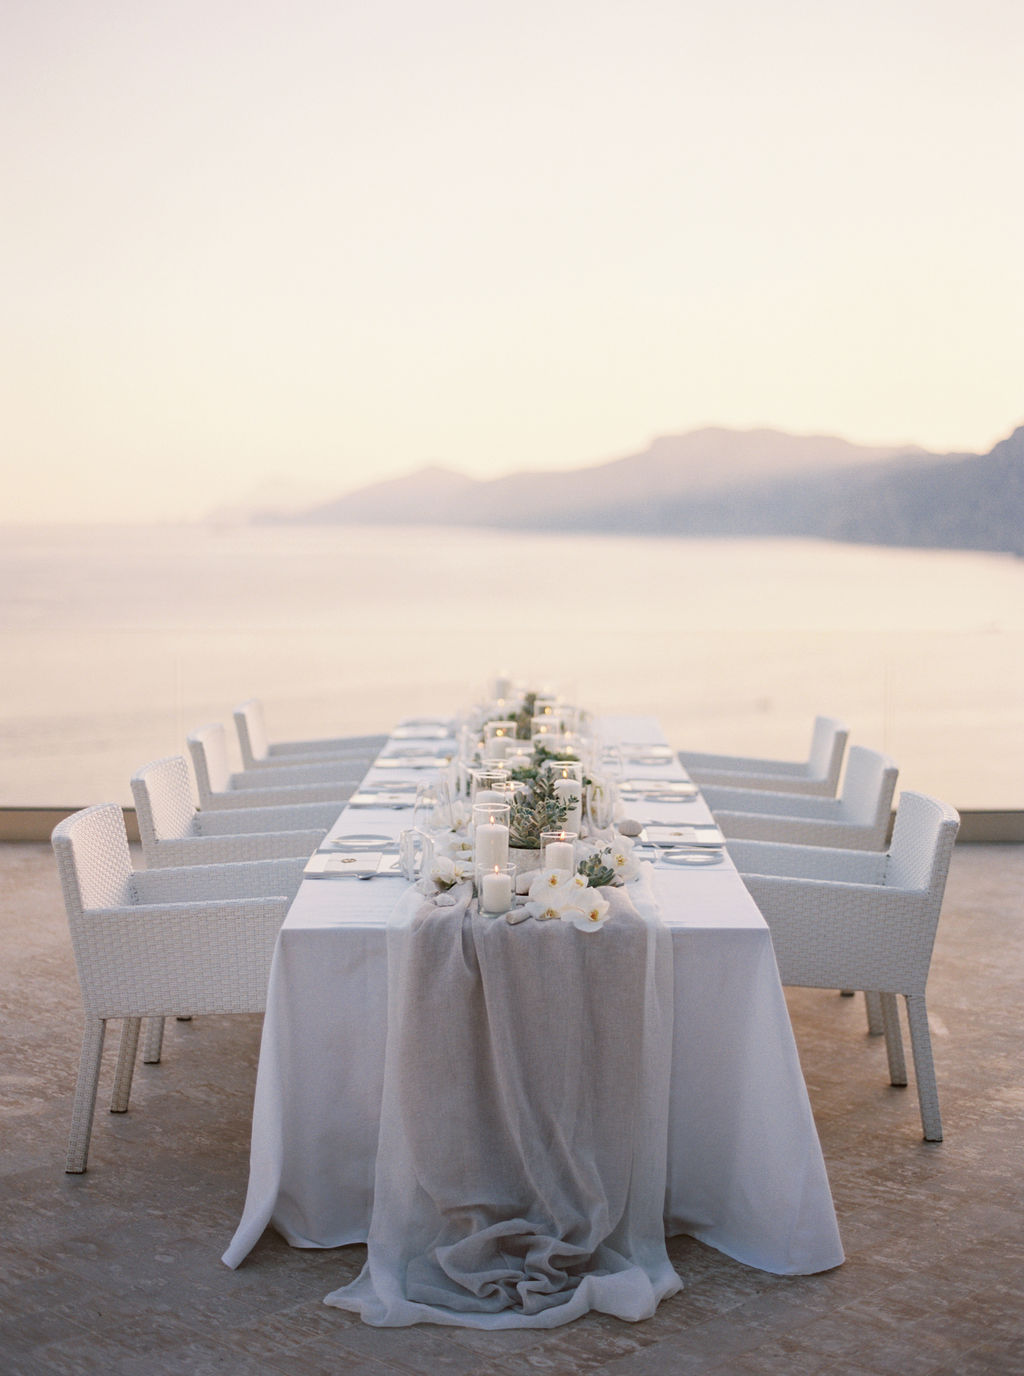 imperial table for an intimate wedding in Praiano